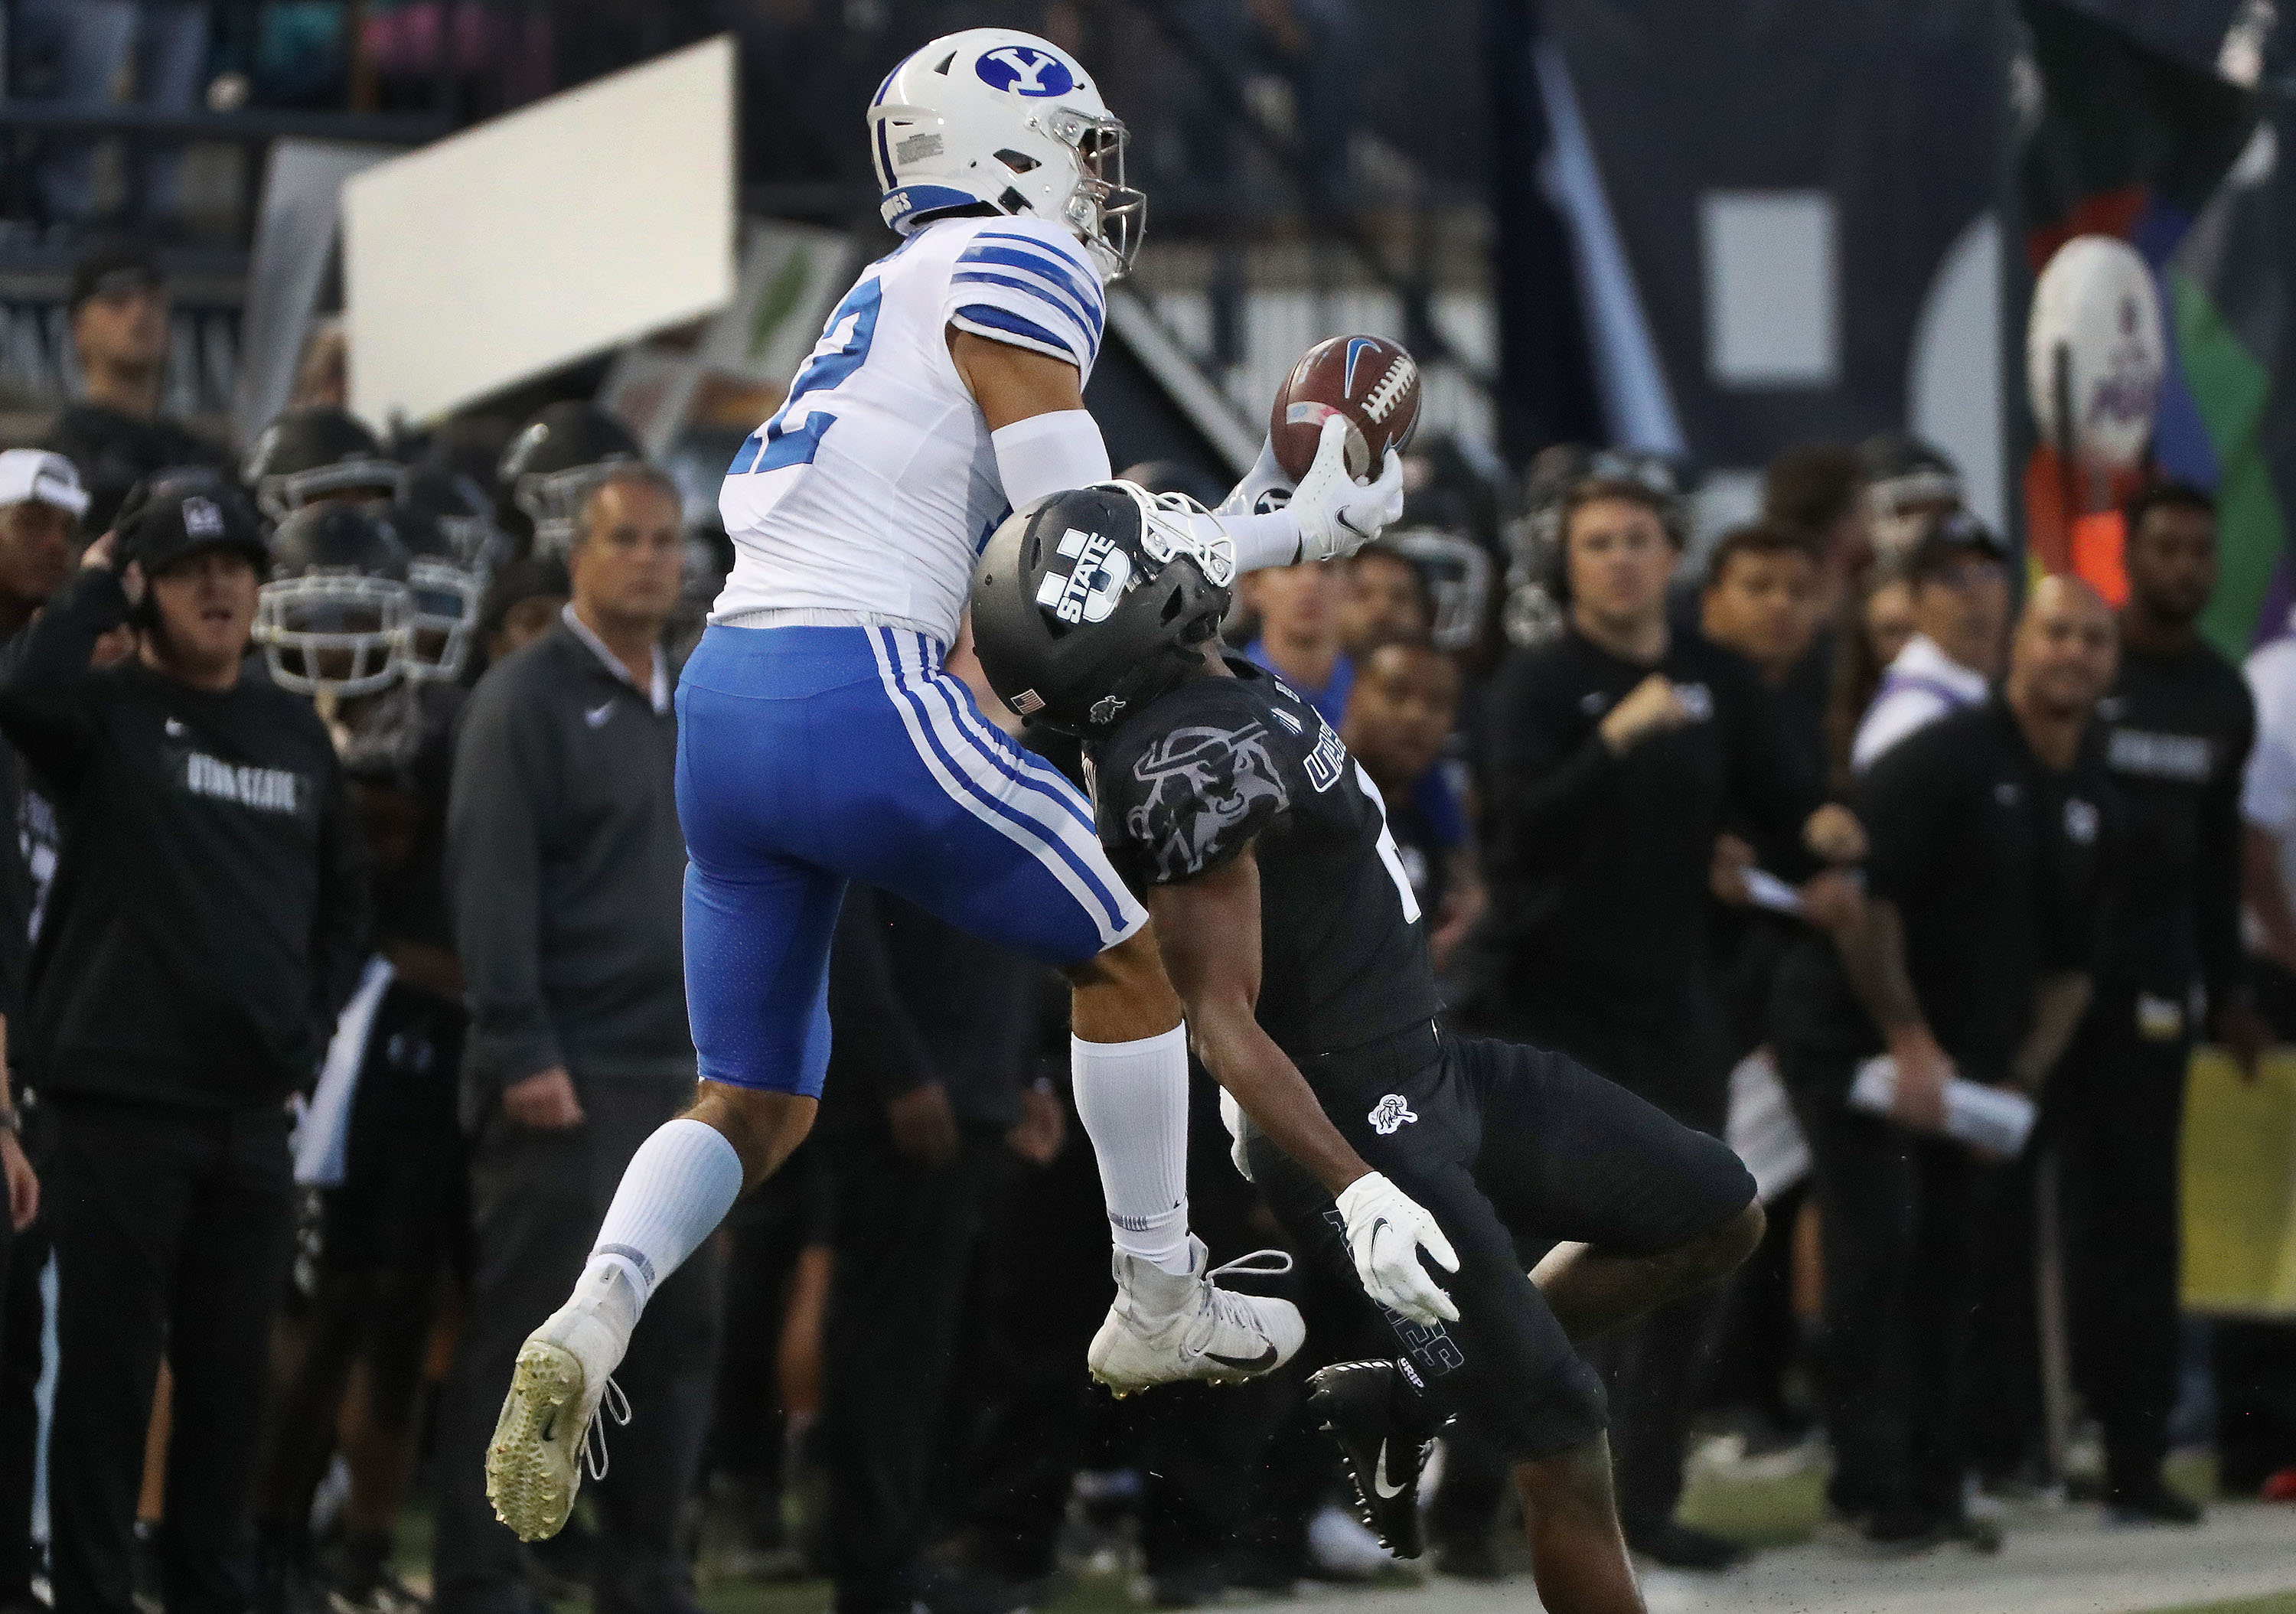 Brigham Young Cougars wide receiver Puka Nacua (12) grabs a pass over Utah State Aggies cornerback Cam Lampkin (6) in Logan on Friday, Oct. 1, 2021.